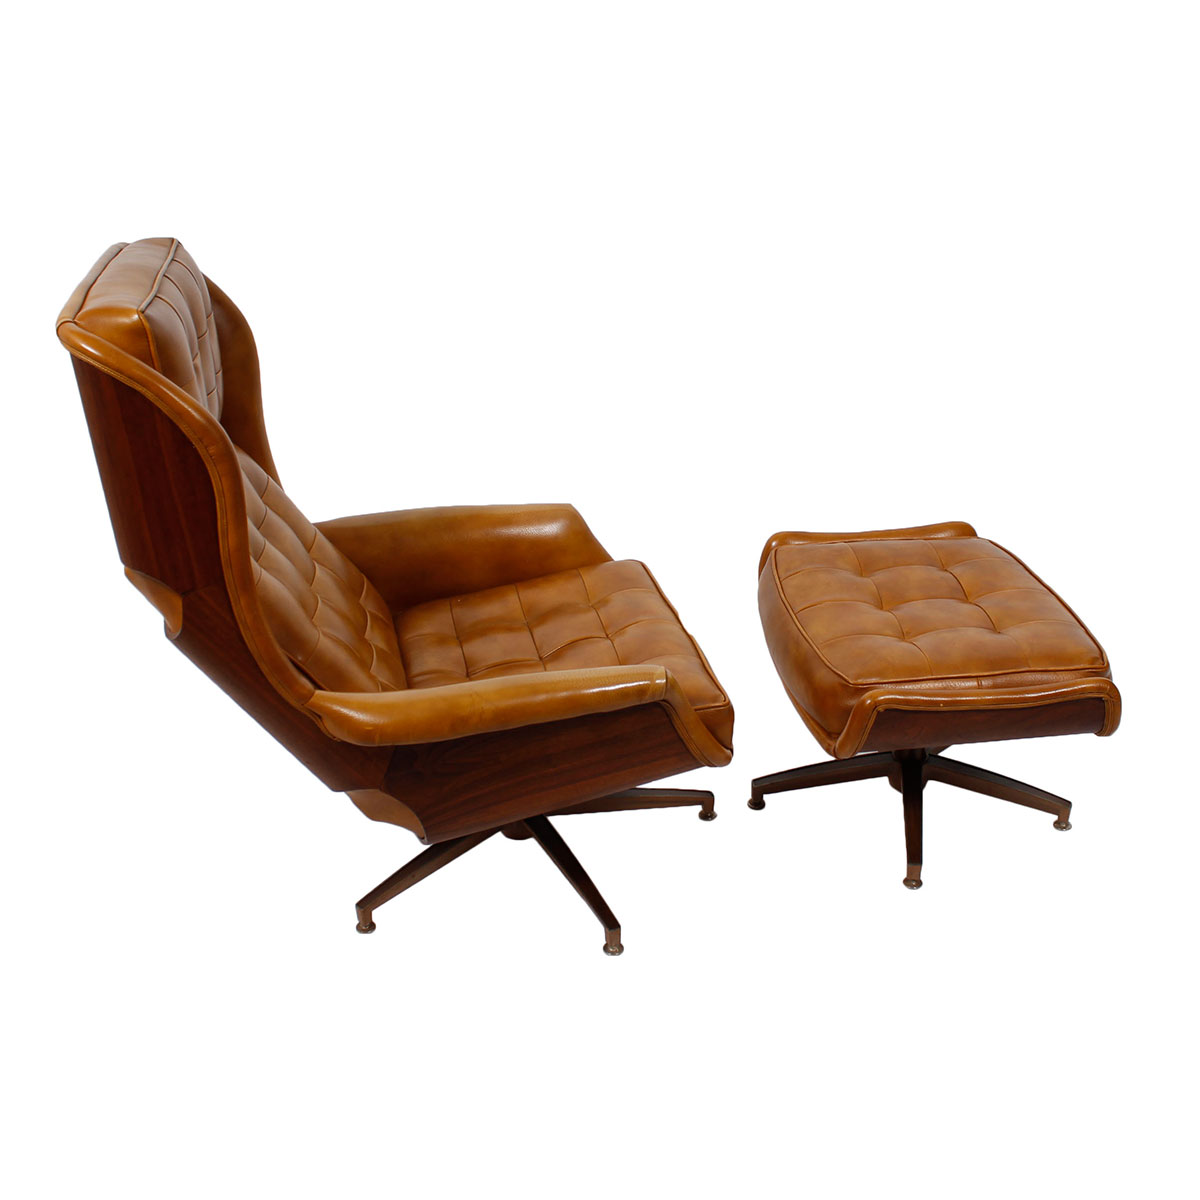 Eames Style MCM Executive Lounge Chair & Ottoman